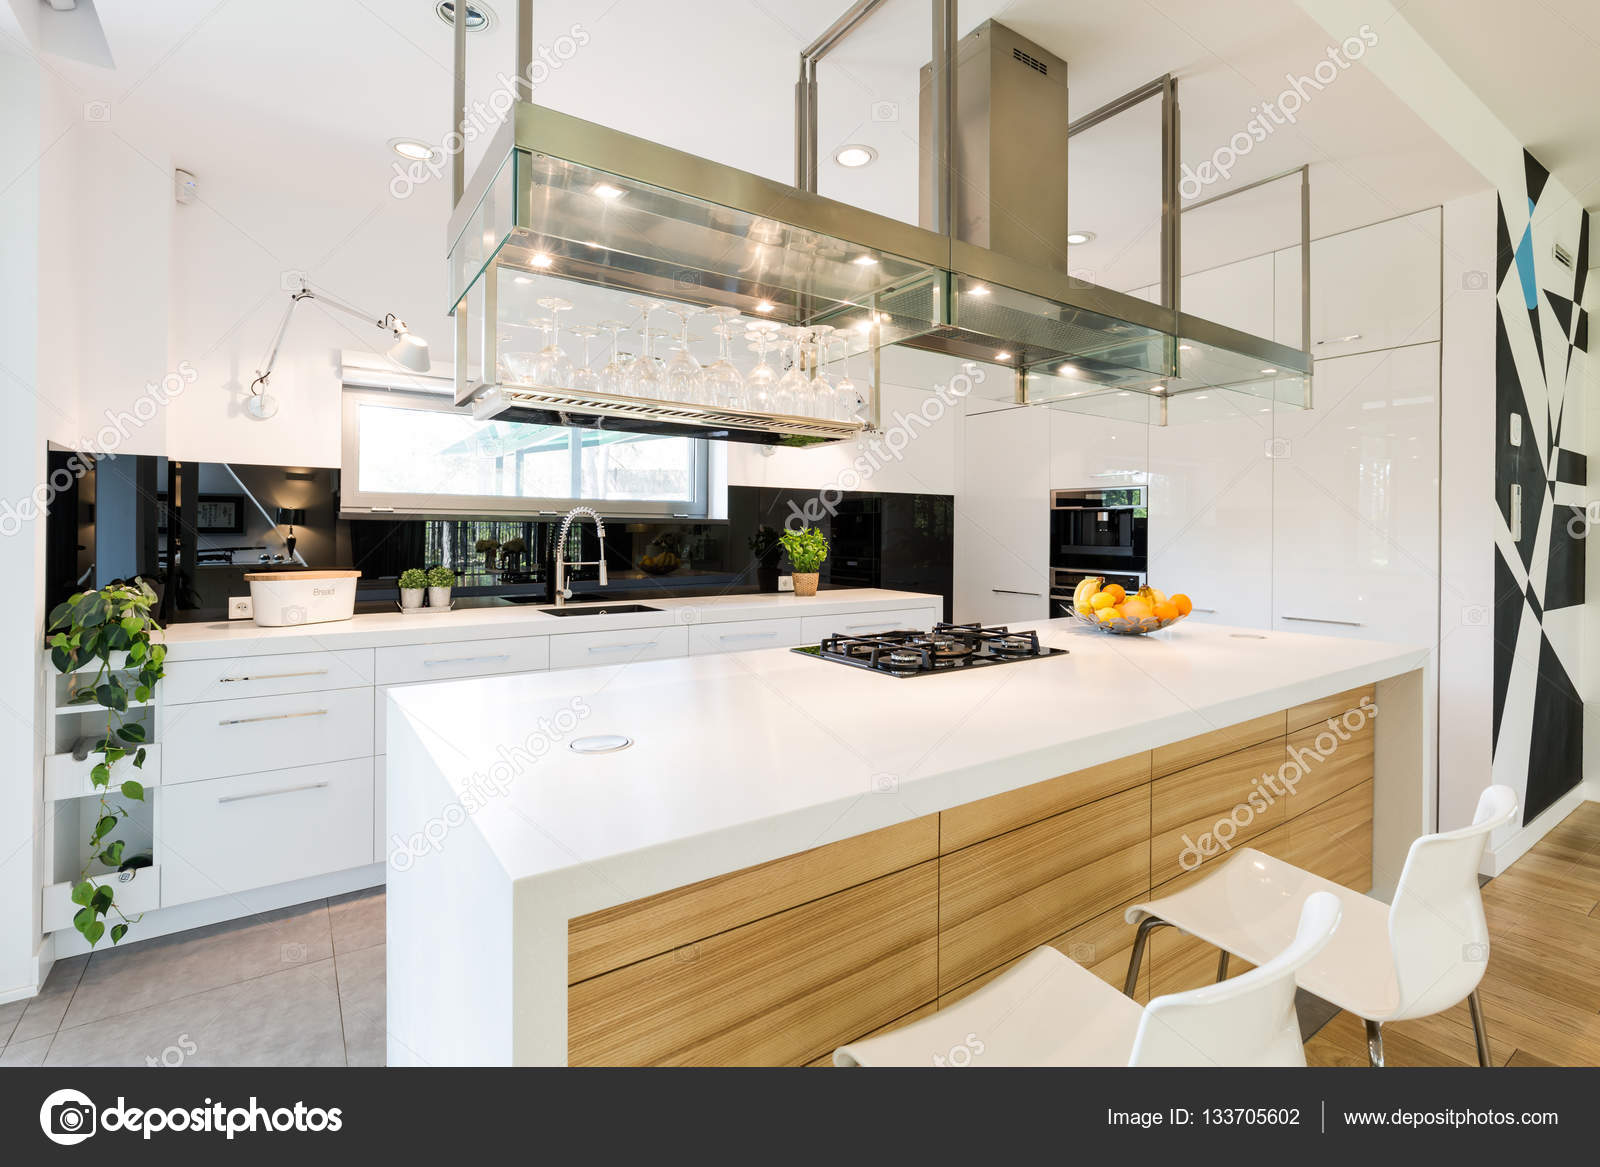 Loft Kitchen With Large Worktop U2014 Stock Photo